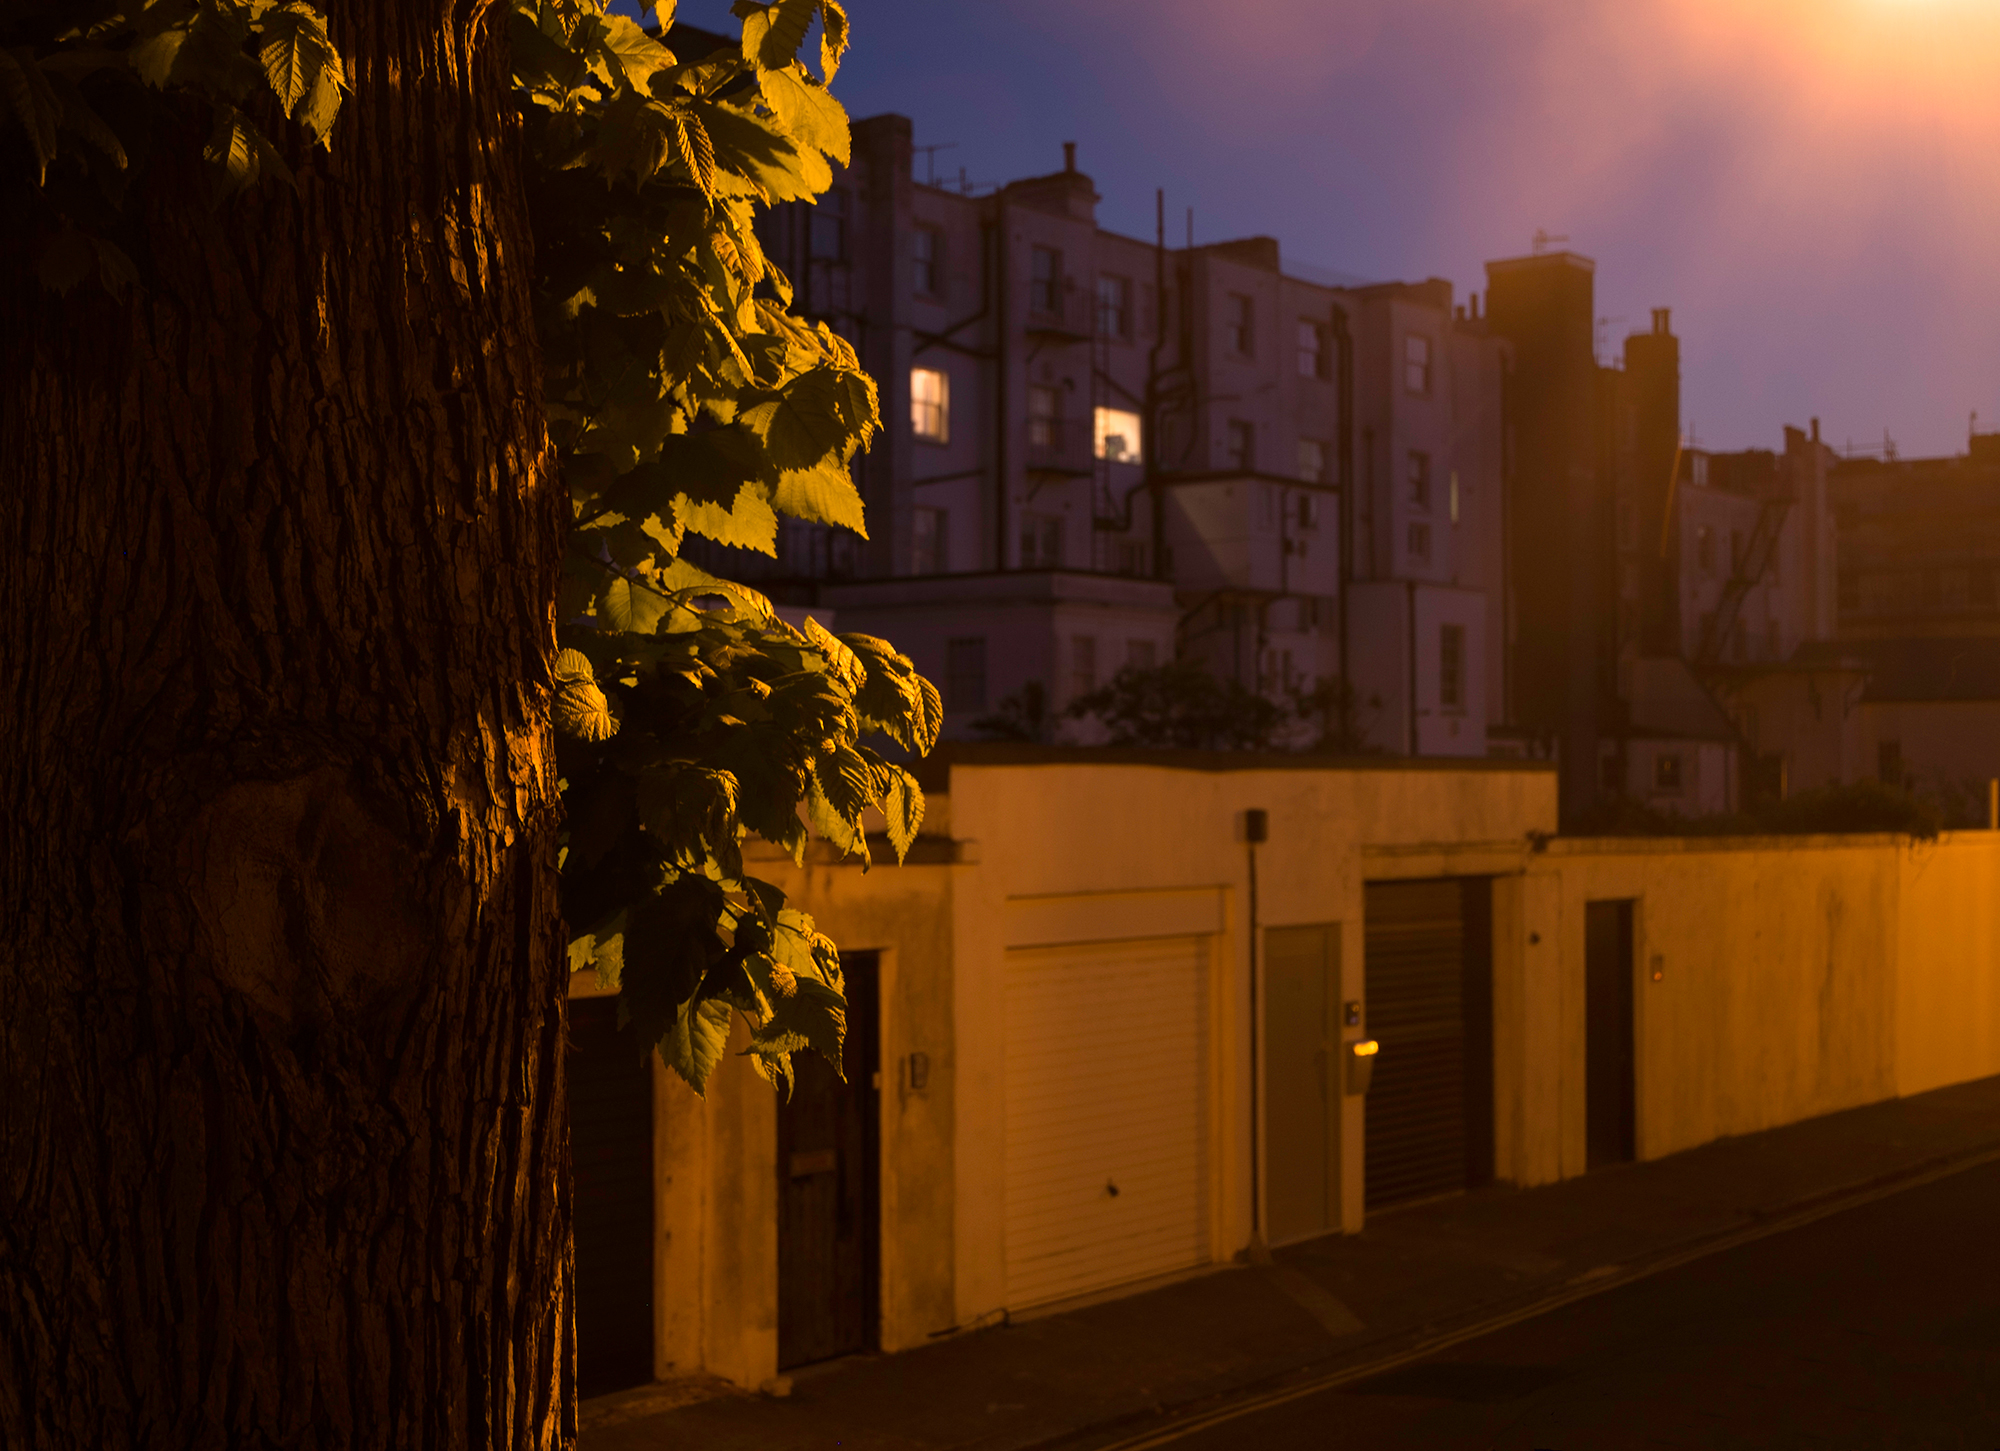 A tree with leaves glowing in the streetlight against a background of garages and the backs of buildings